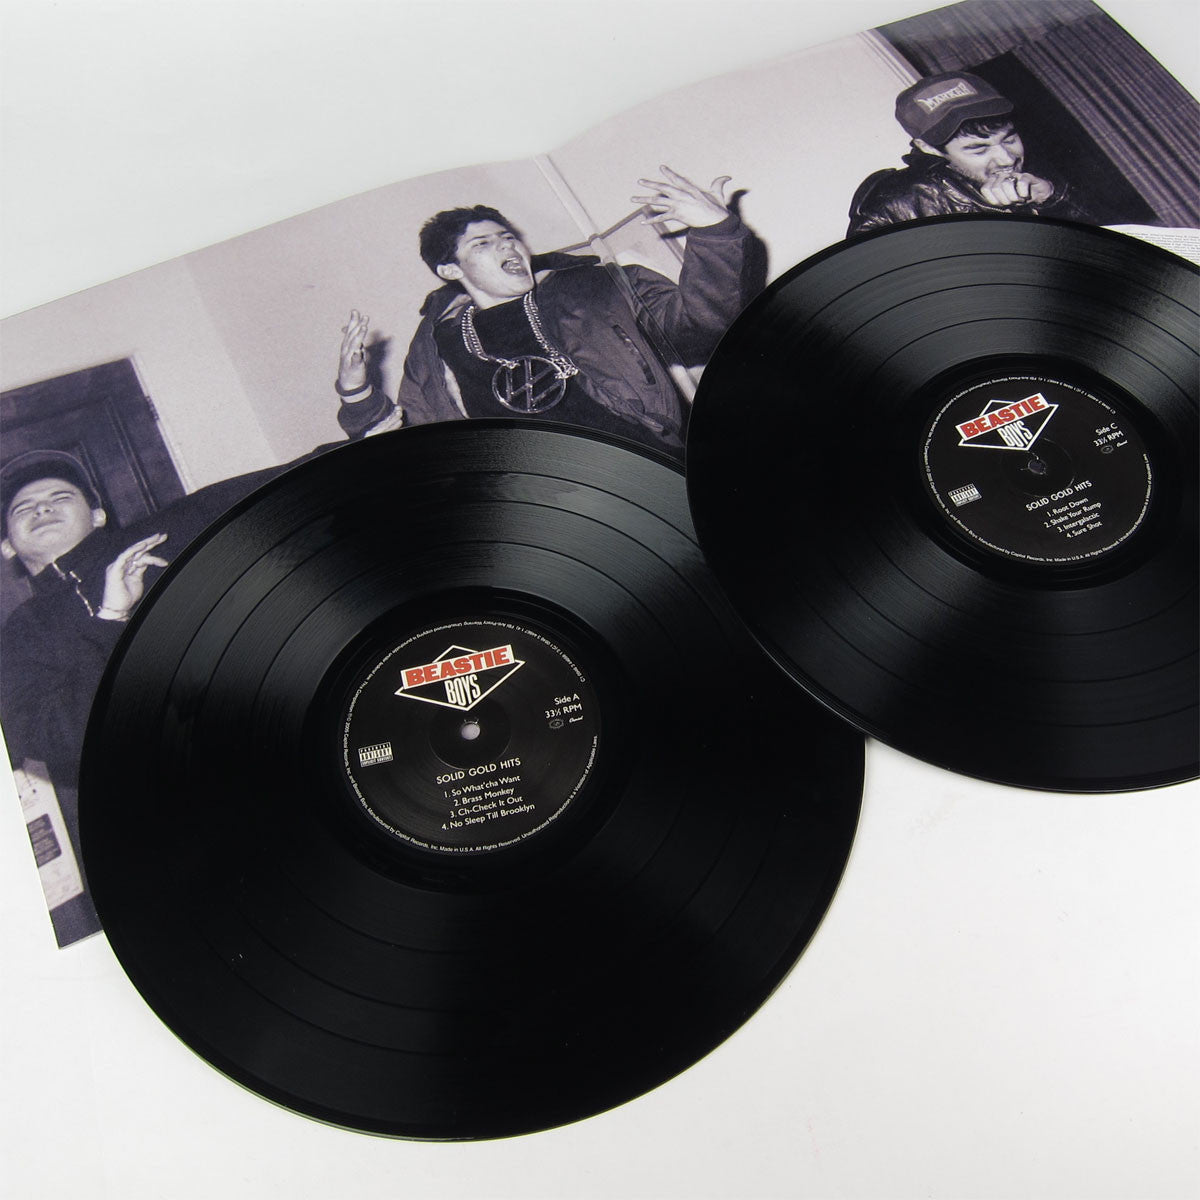 Beastie Boys: Solid Gold Hits Vinyl 2LP 2